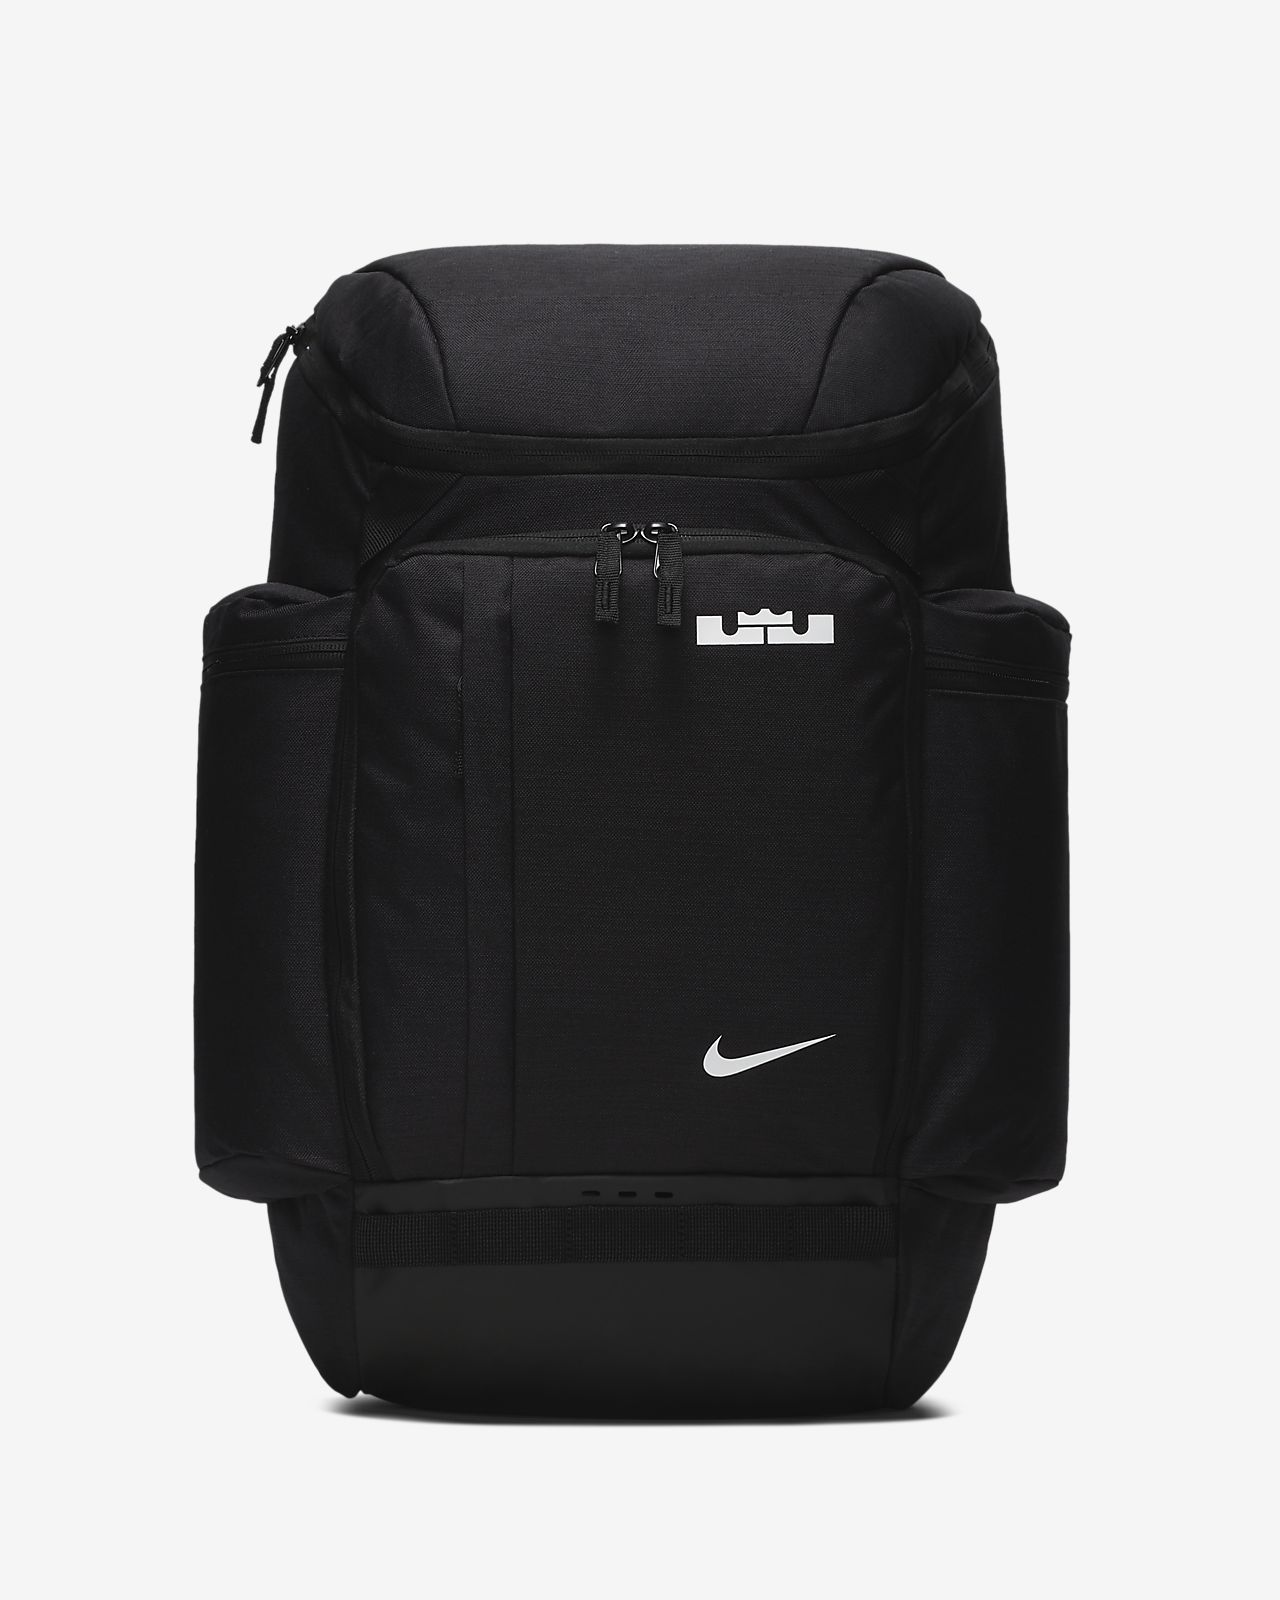 620551e44dc0 Low Resolution LeBron Men's Backpack LeBron Men's Backpack